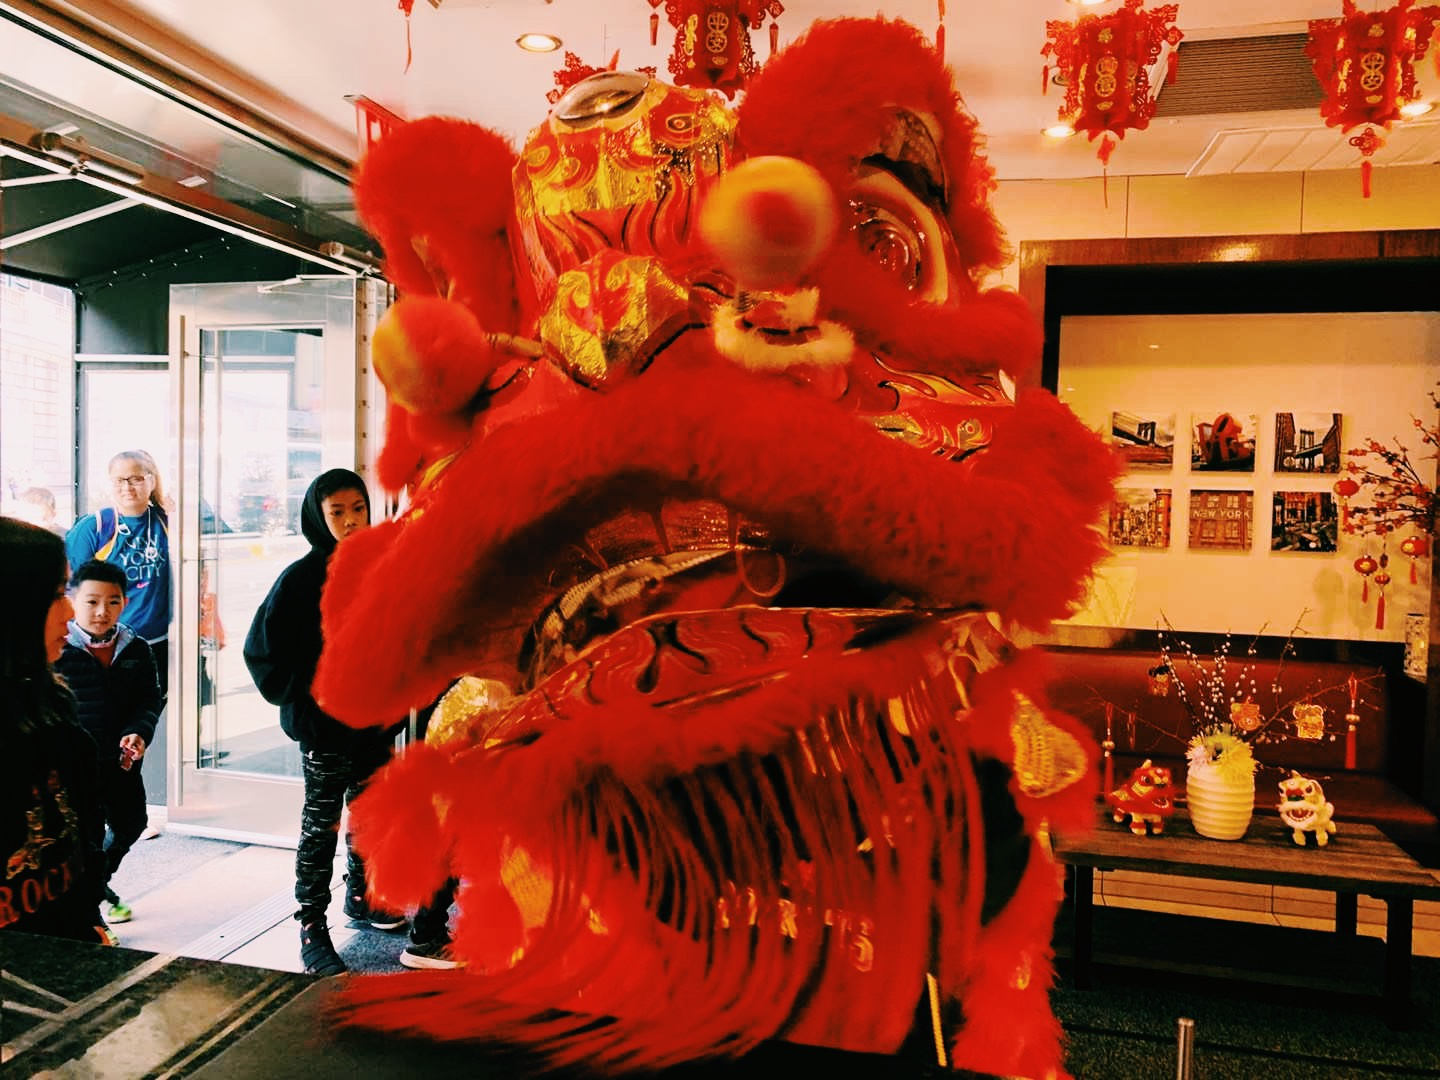 Experience local Chinatown culture in our Cool location